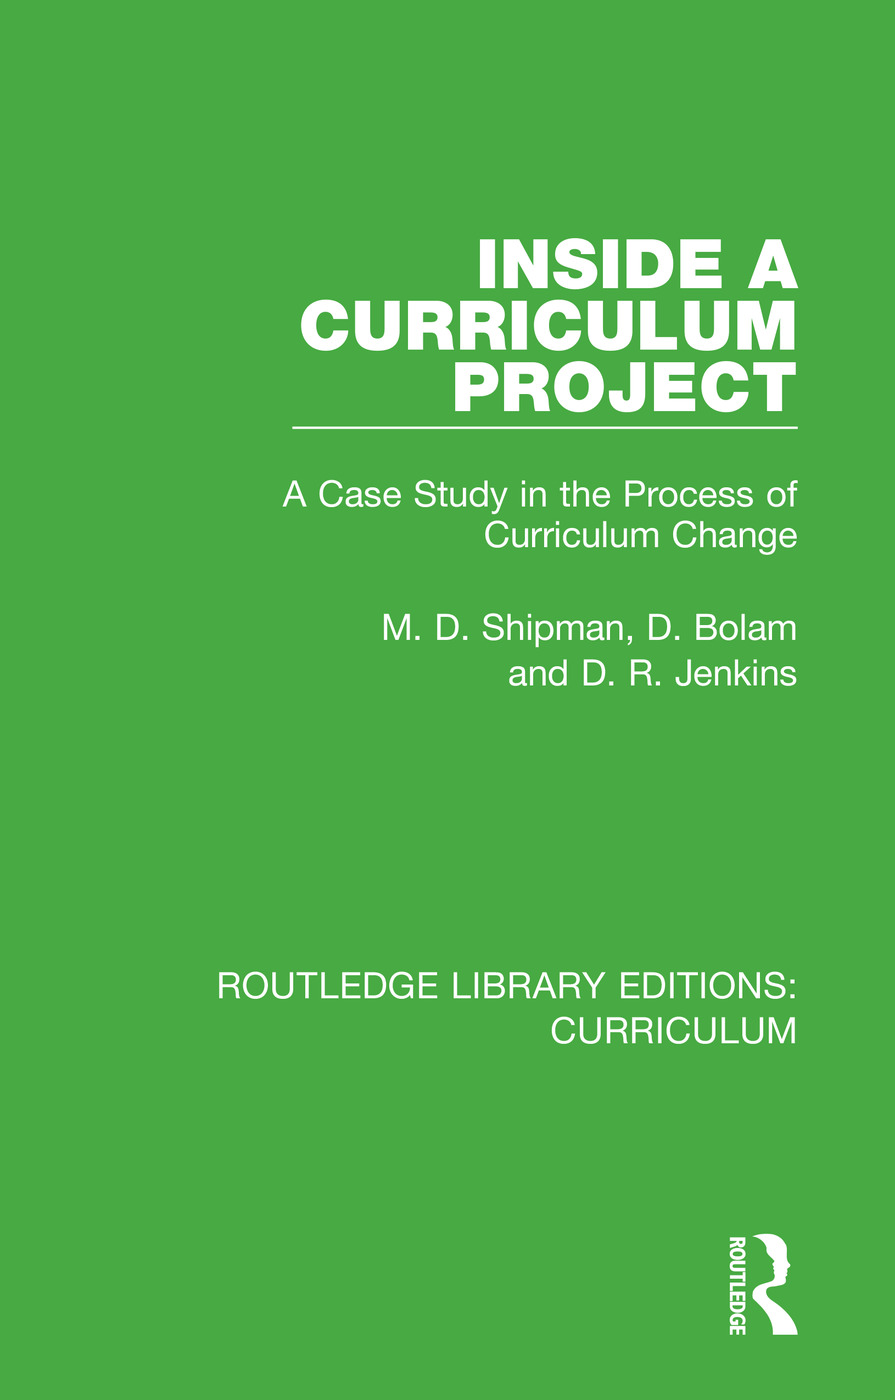 Inside a Curriculum Project